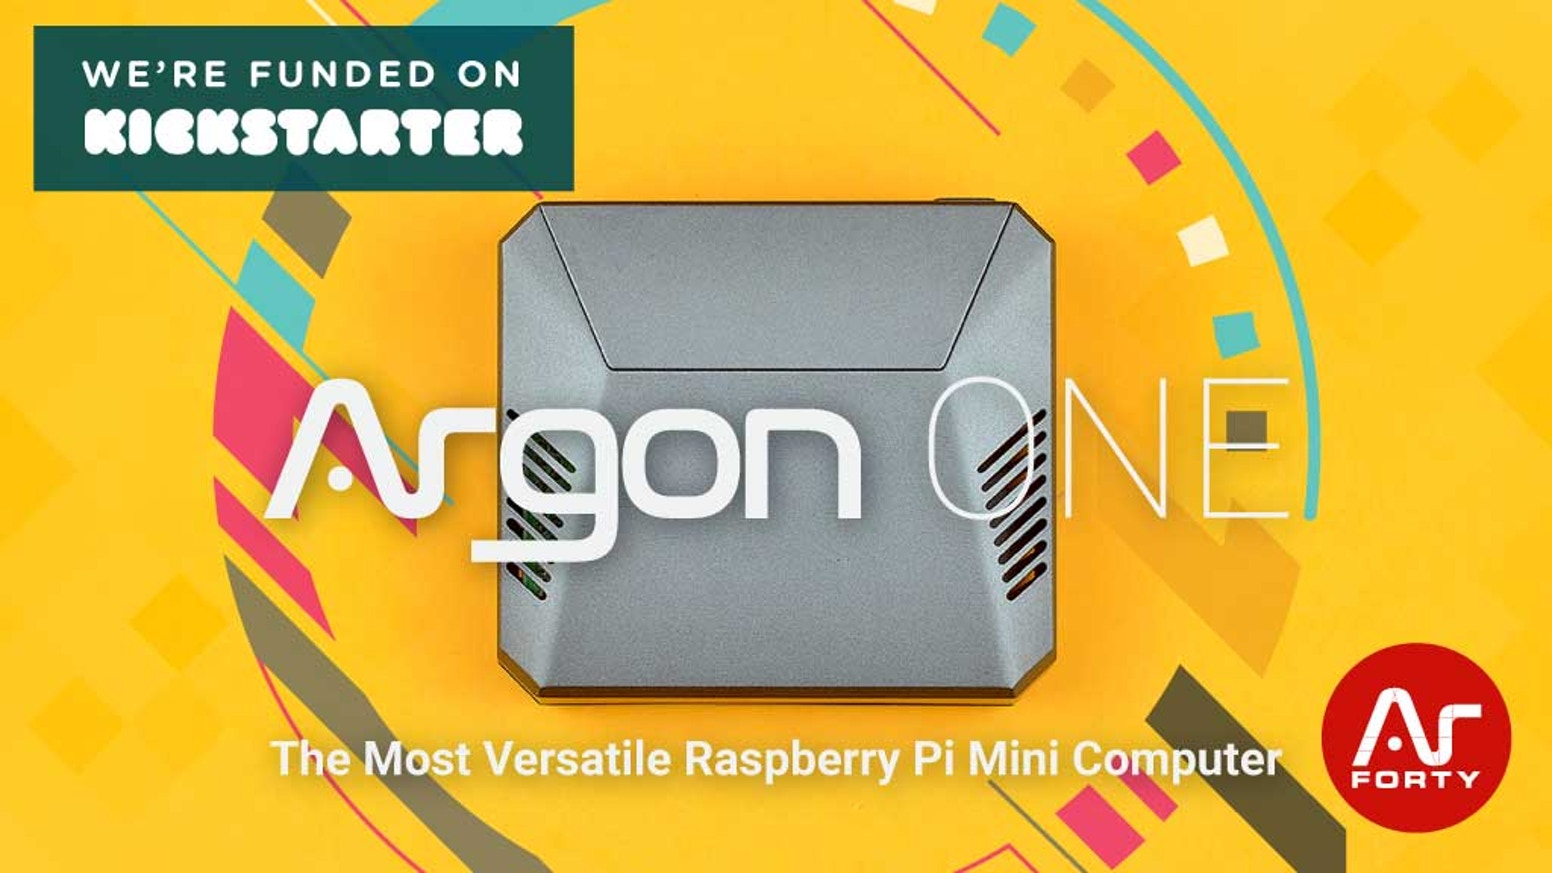 The most versatile mini computer powered by the most powerful Raspberry Pi 3 ever made.